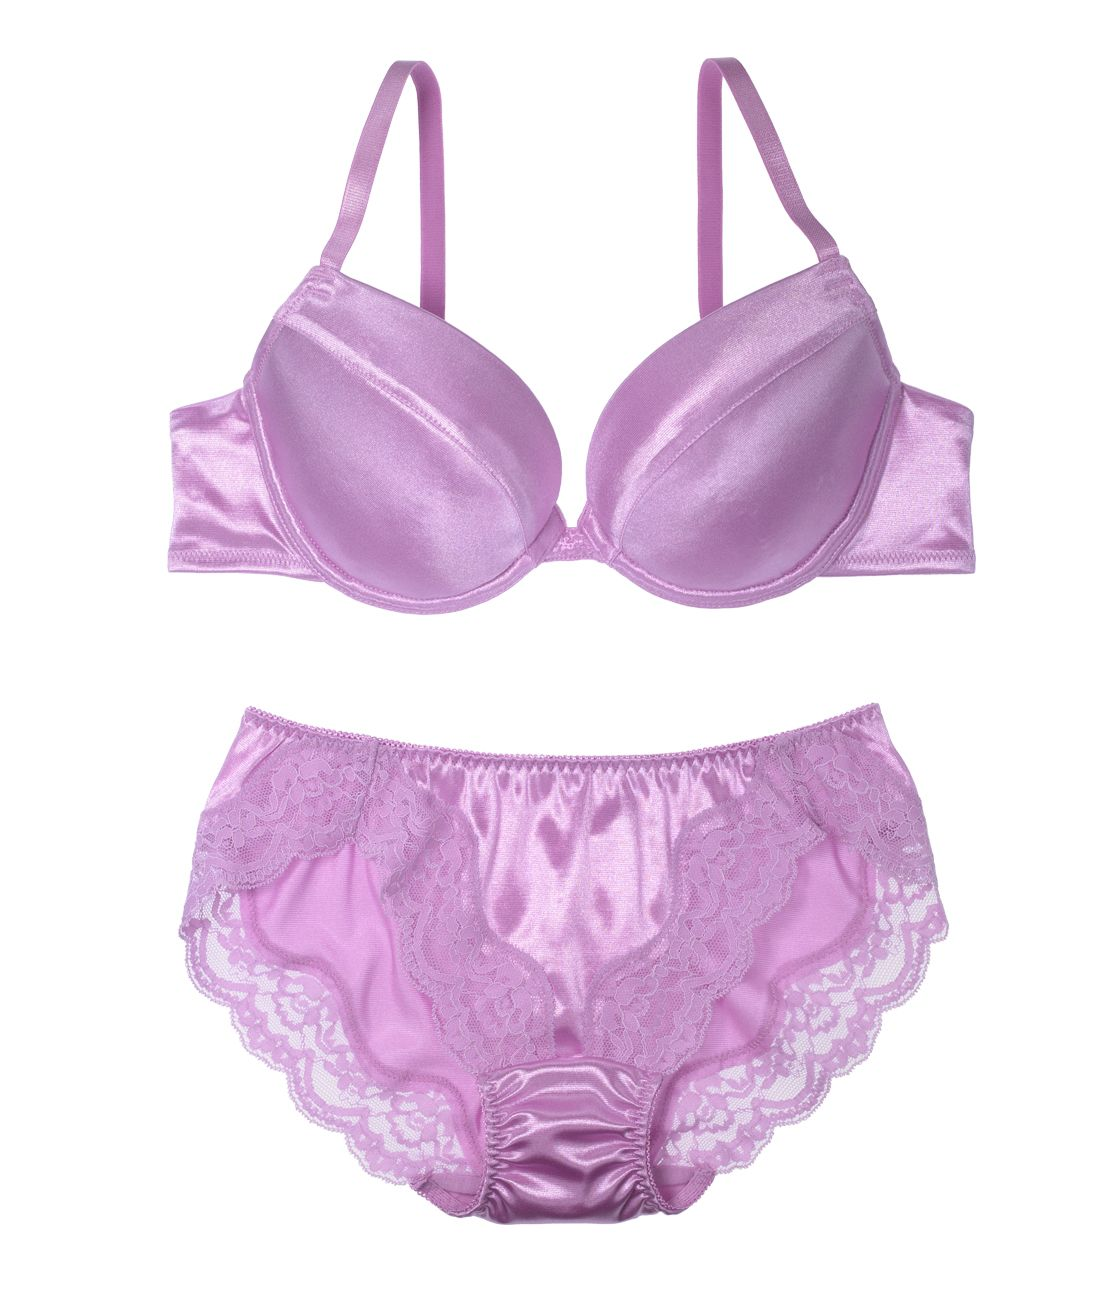 YM Simple satin bra set